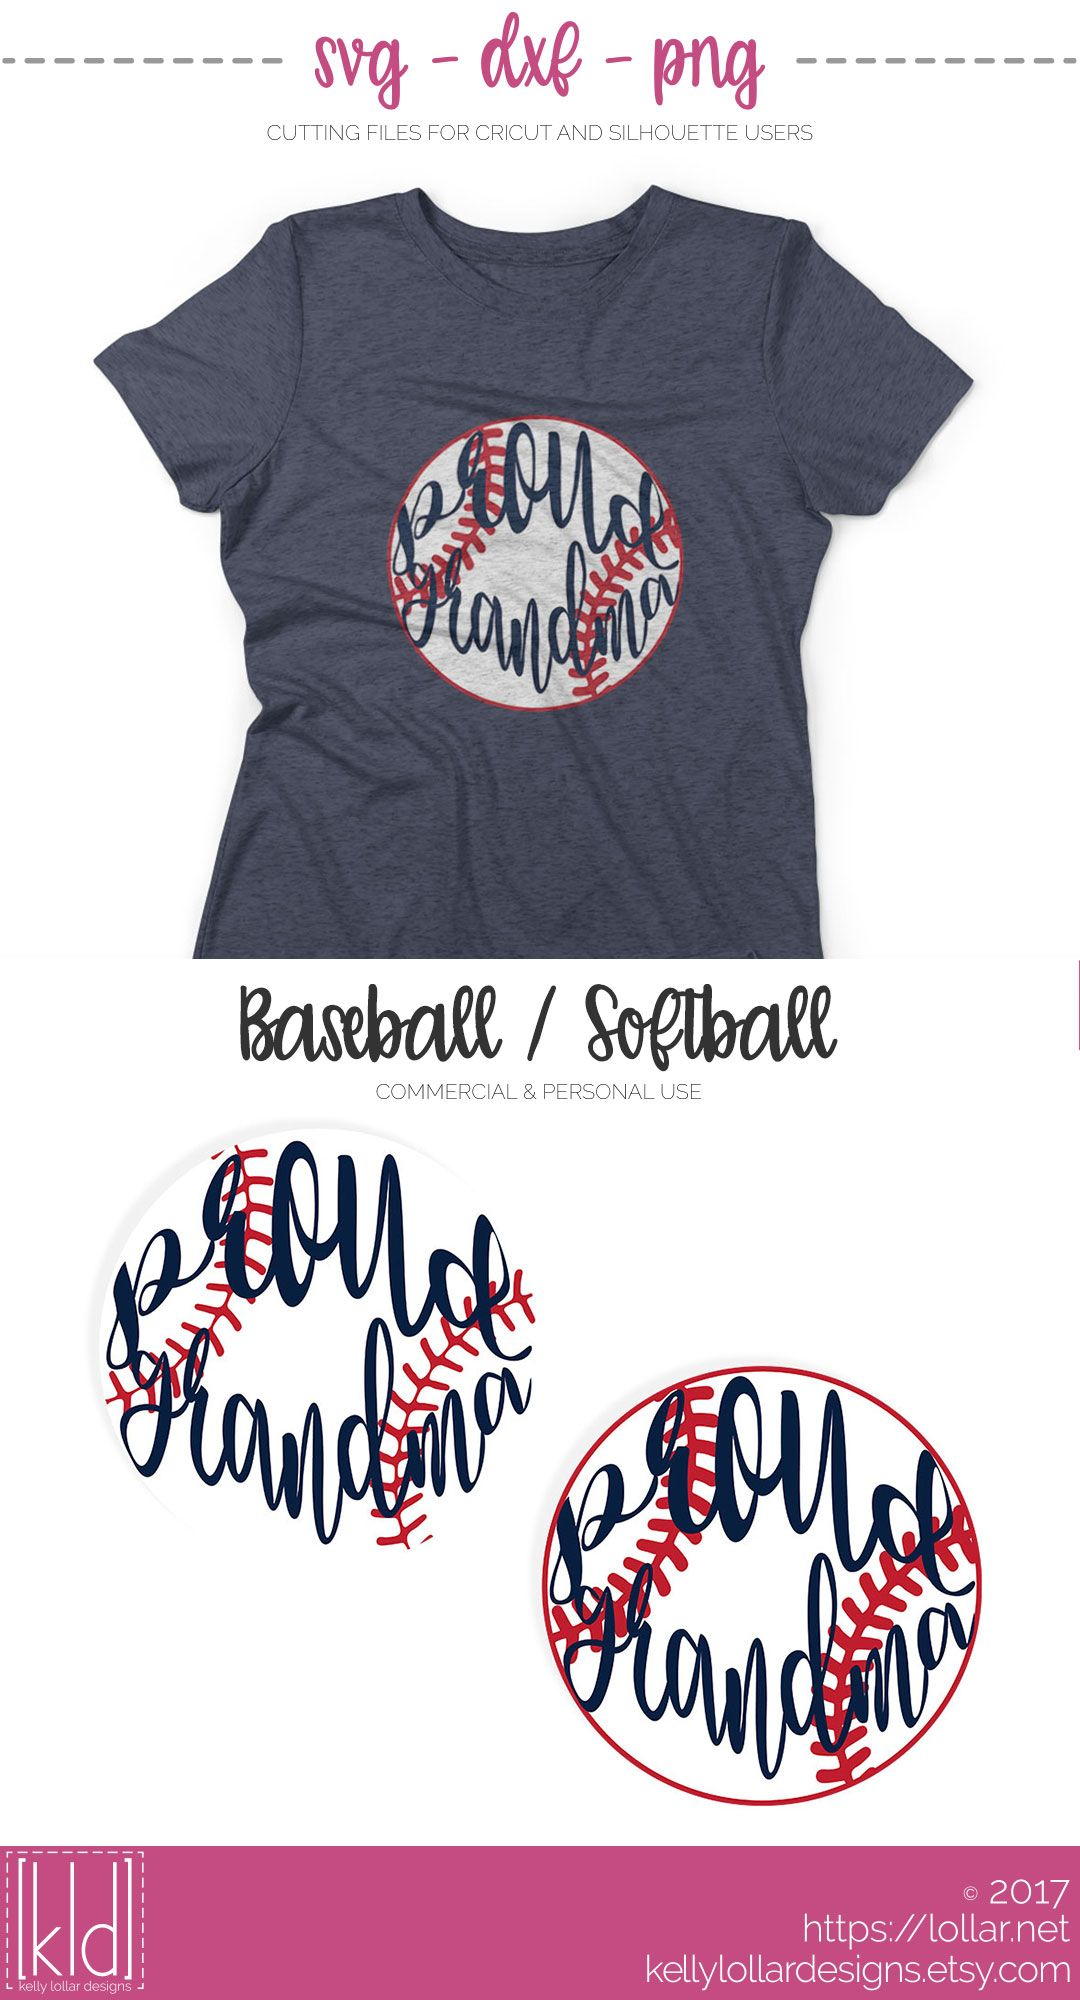 a80c56a3269 Proud Baseball   Softball Grandma svg file - Free For Personal Use by Kelly  Lollar Designs